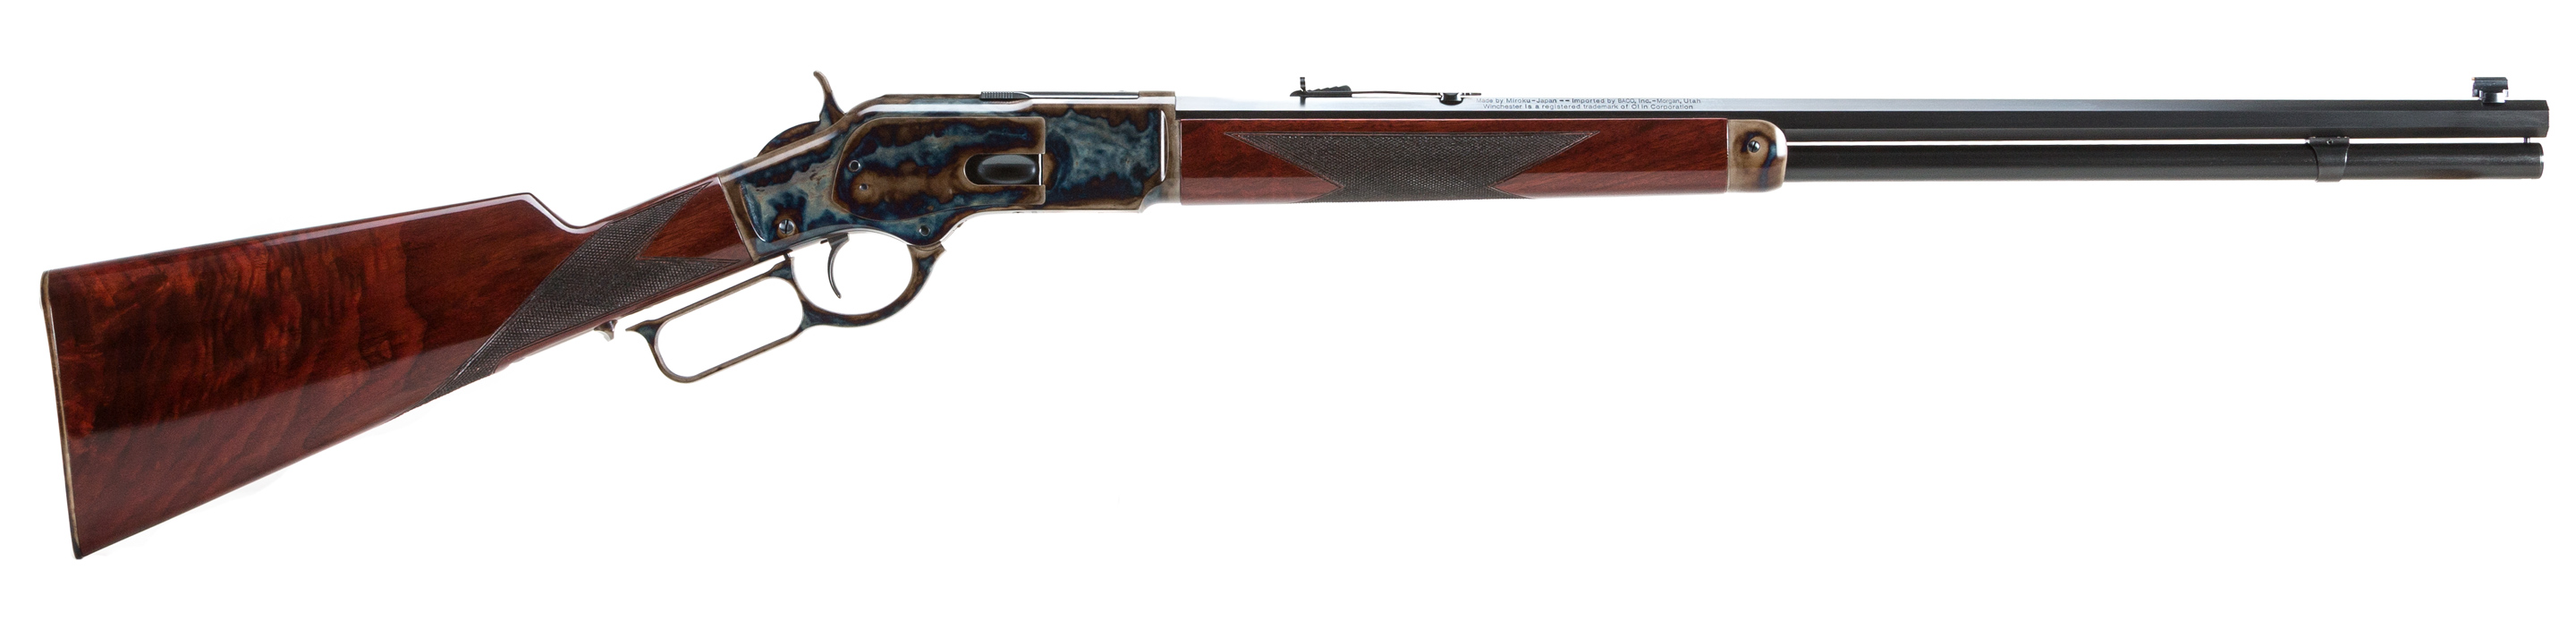 5533 Turnbull Winchester 1873 in 44-40